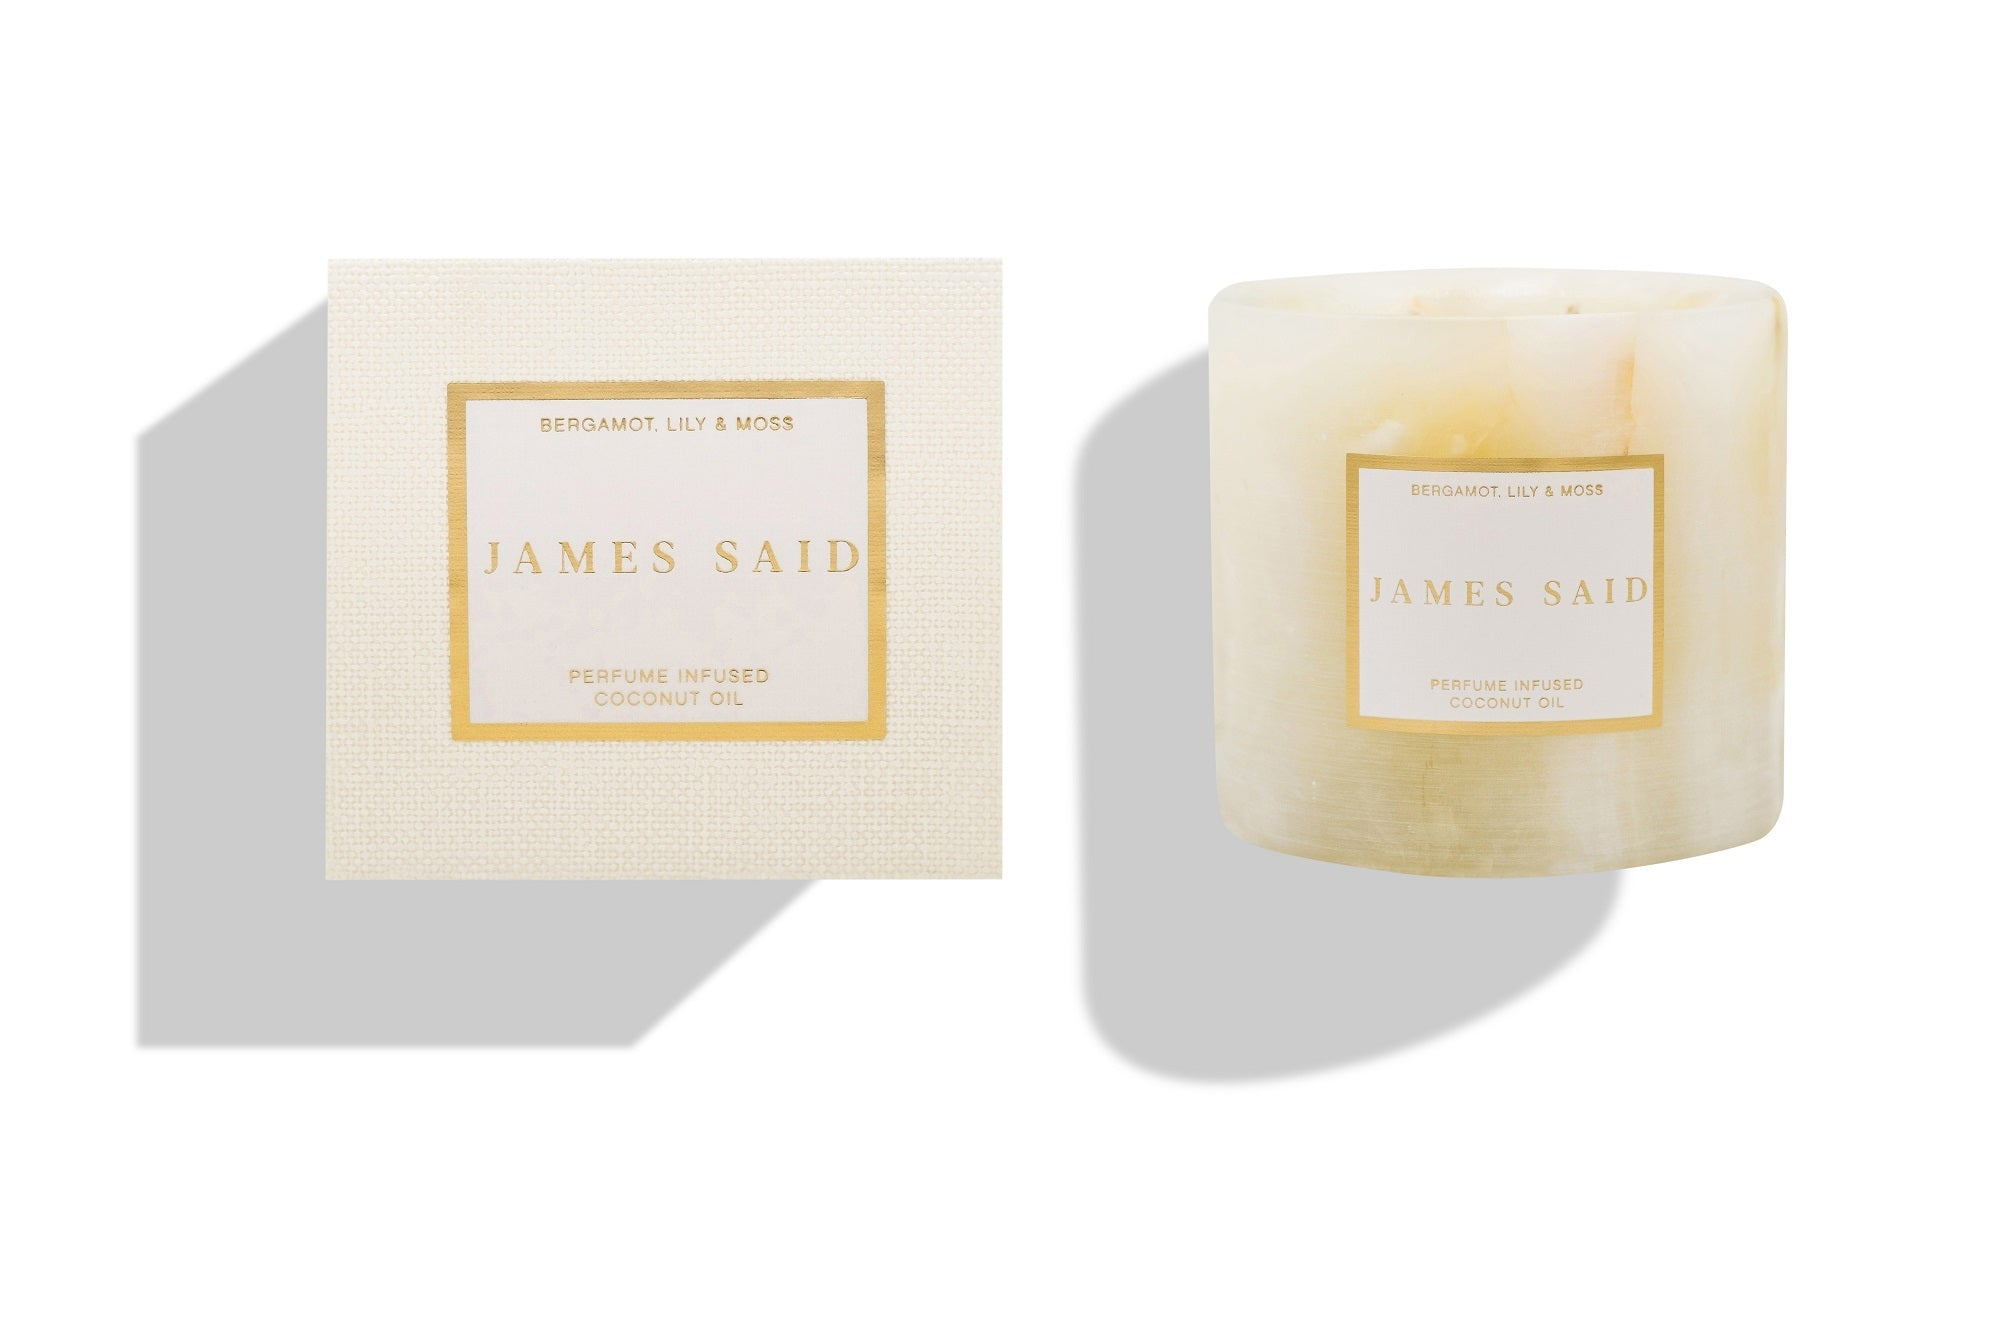 James Said Bergamot, Lily & Moss Onyx Alabaster Candle - 400g